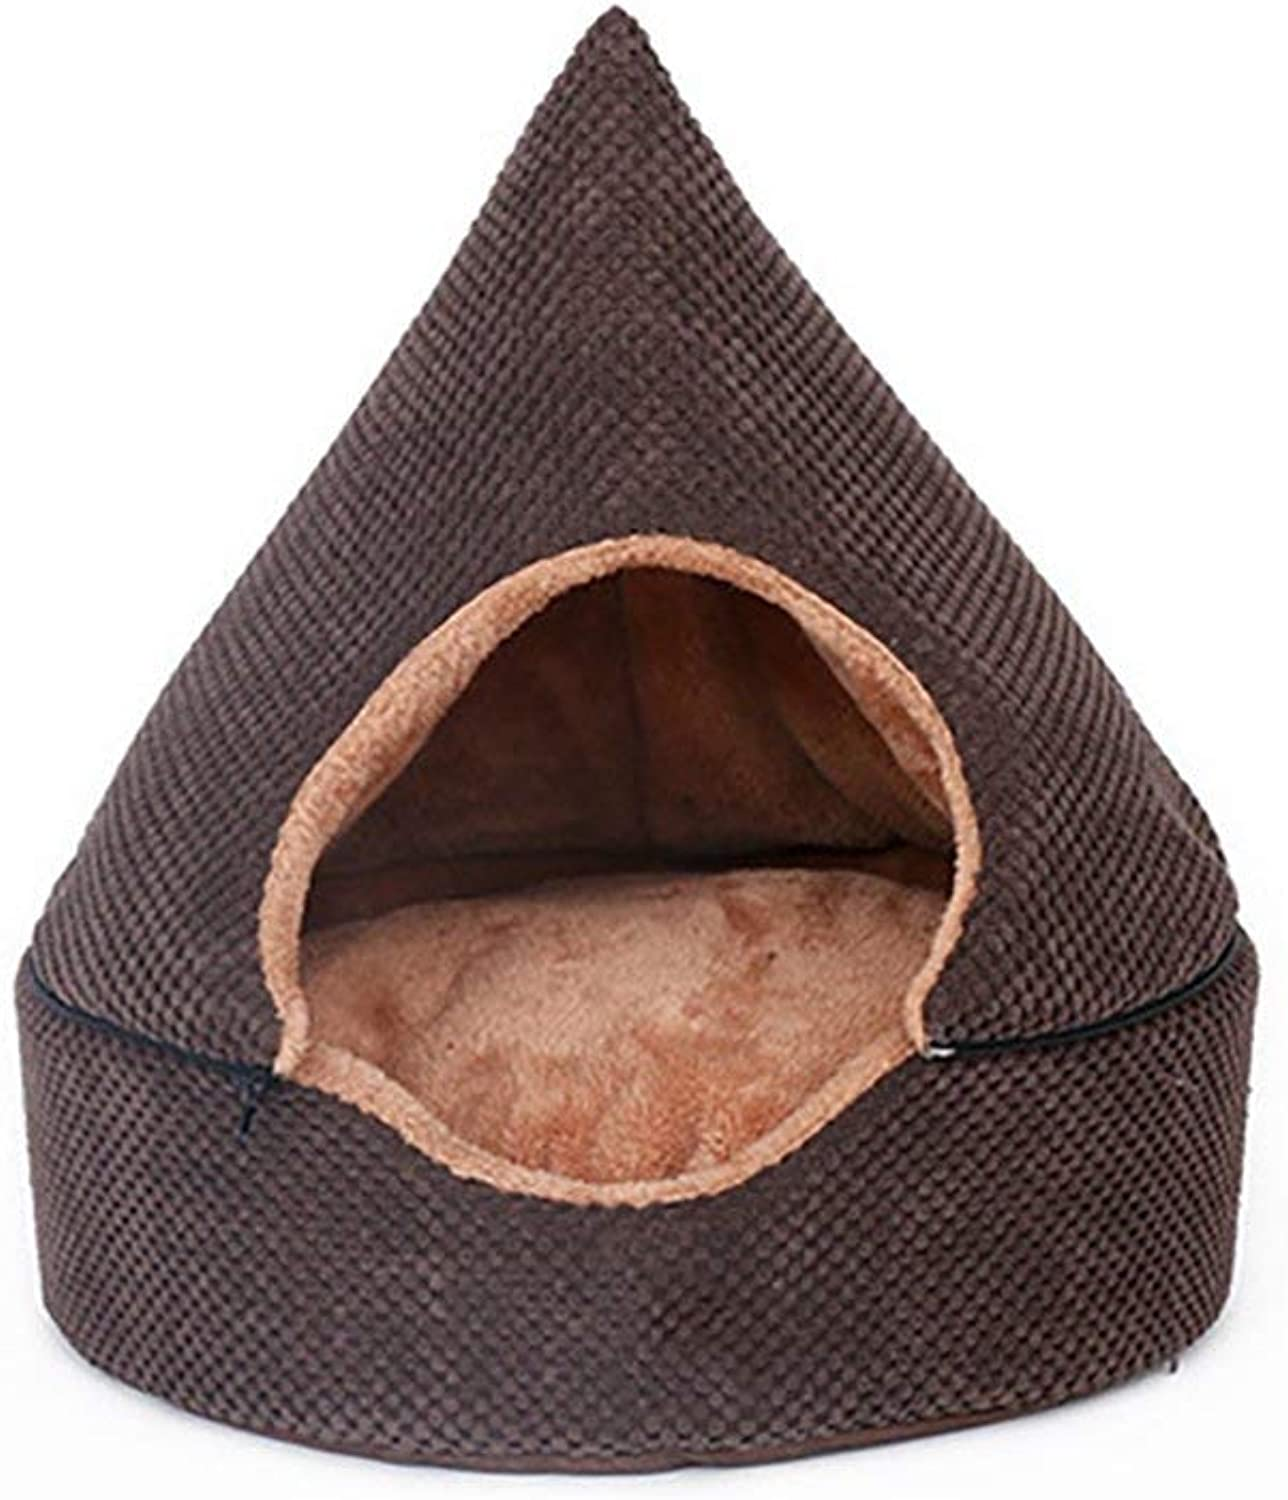 Pet Sofa Yurt Closed Type Pet Tent Warm Breathable Four Seasons Universal Dual Use Cat House Soft Washable Dog Mats Removable DirtResistant Summer Medium Dog Cushion NonSlip MoistureProof Pet Beds,